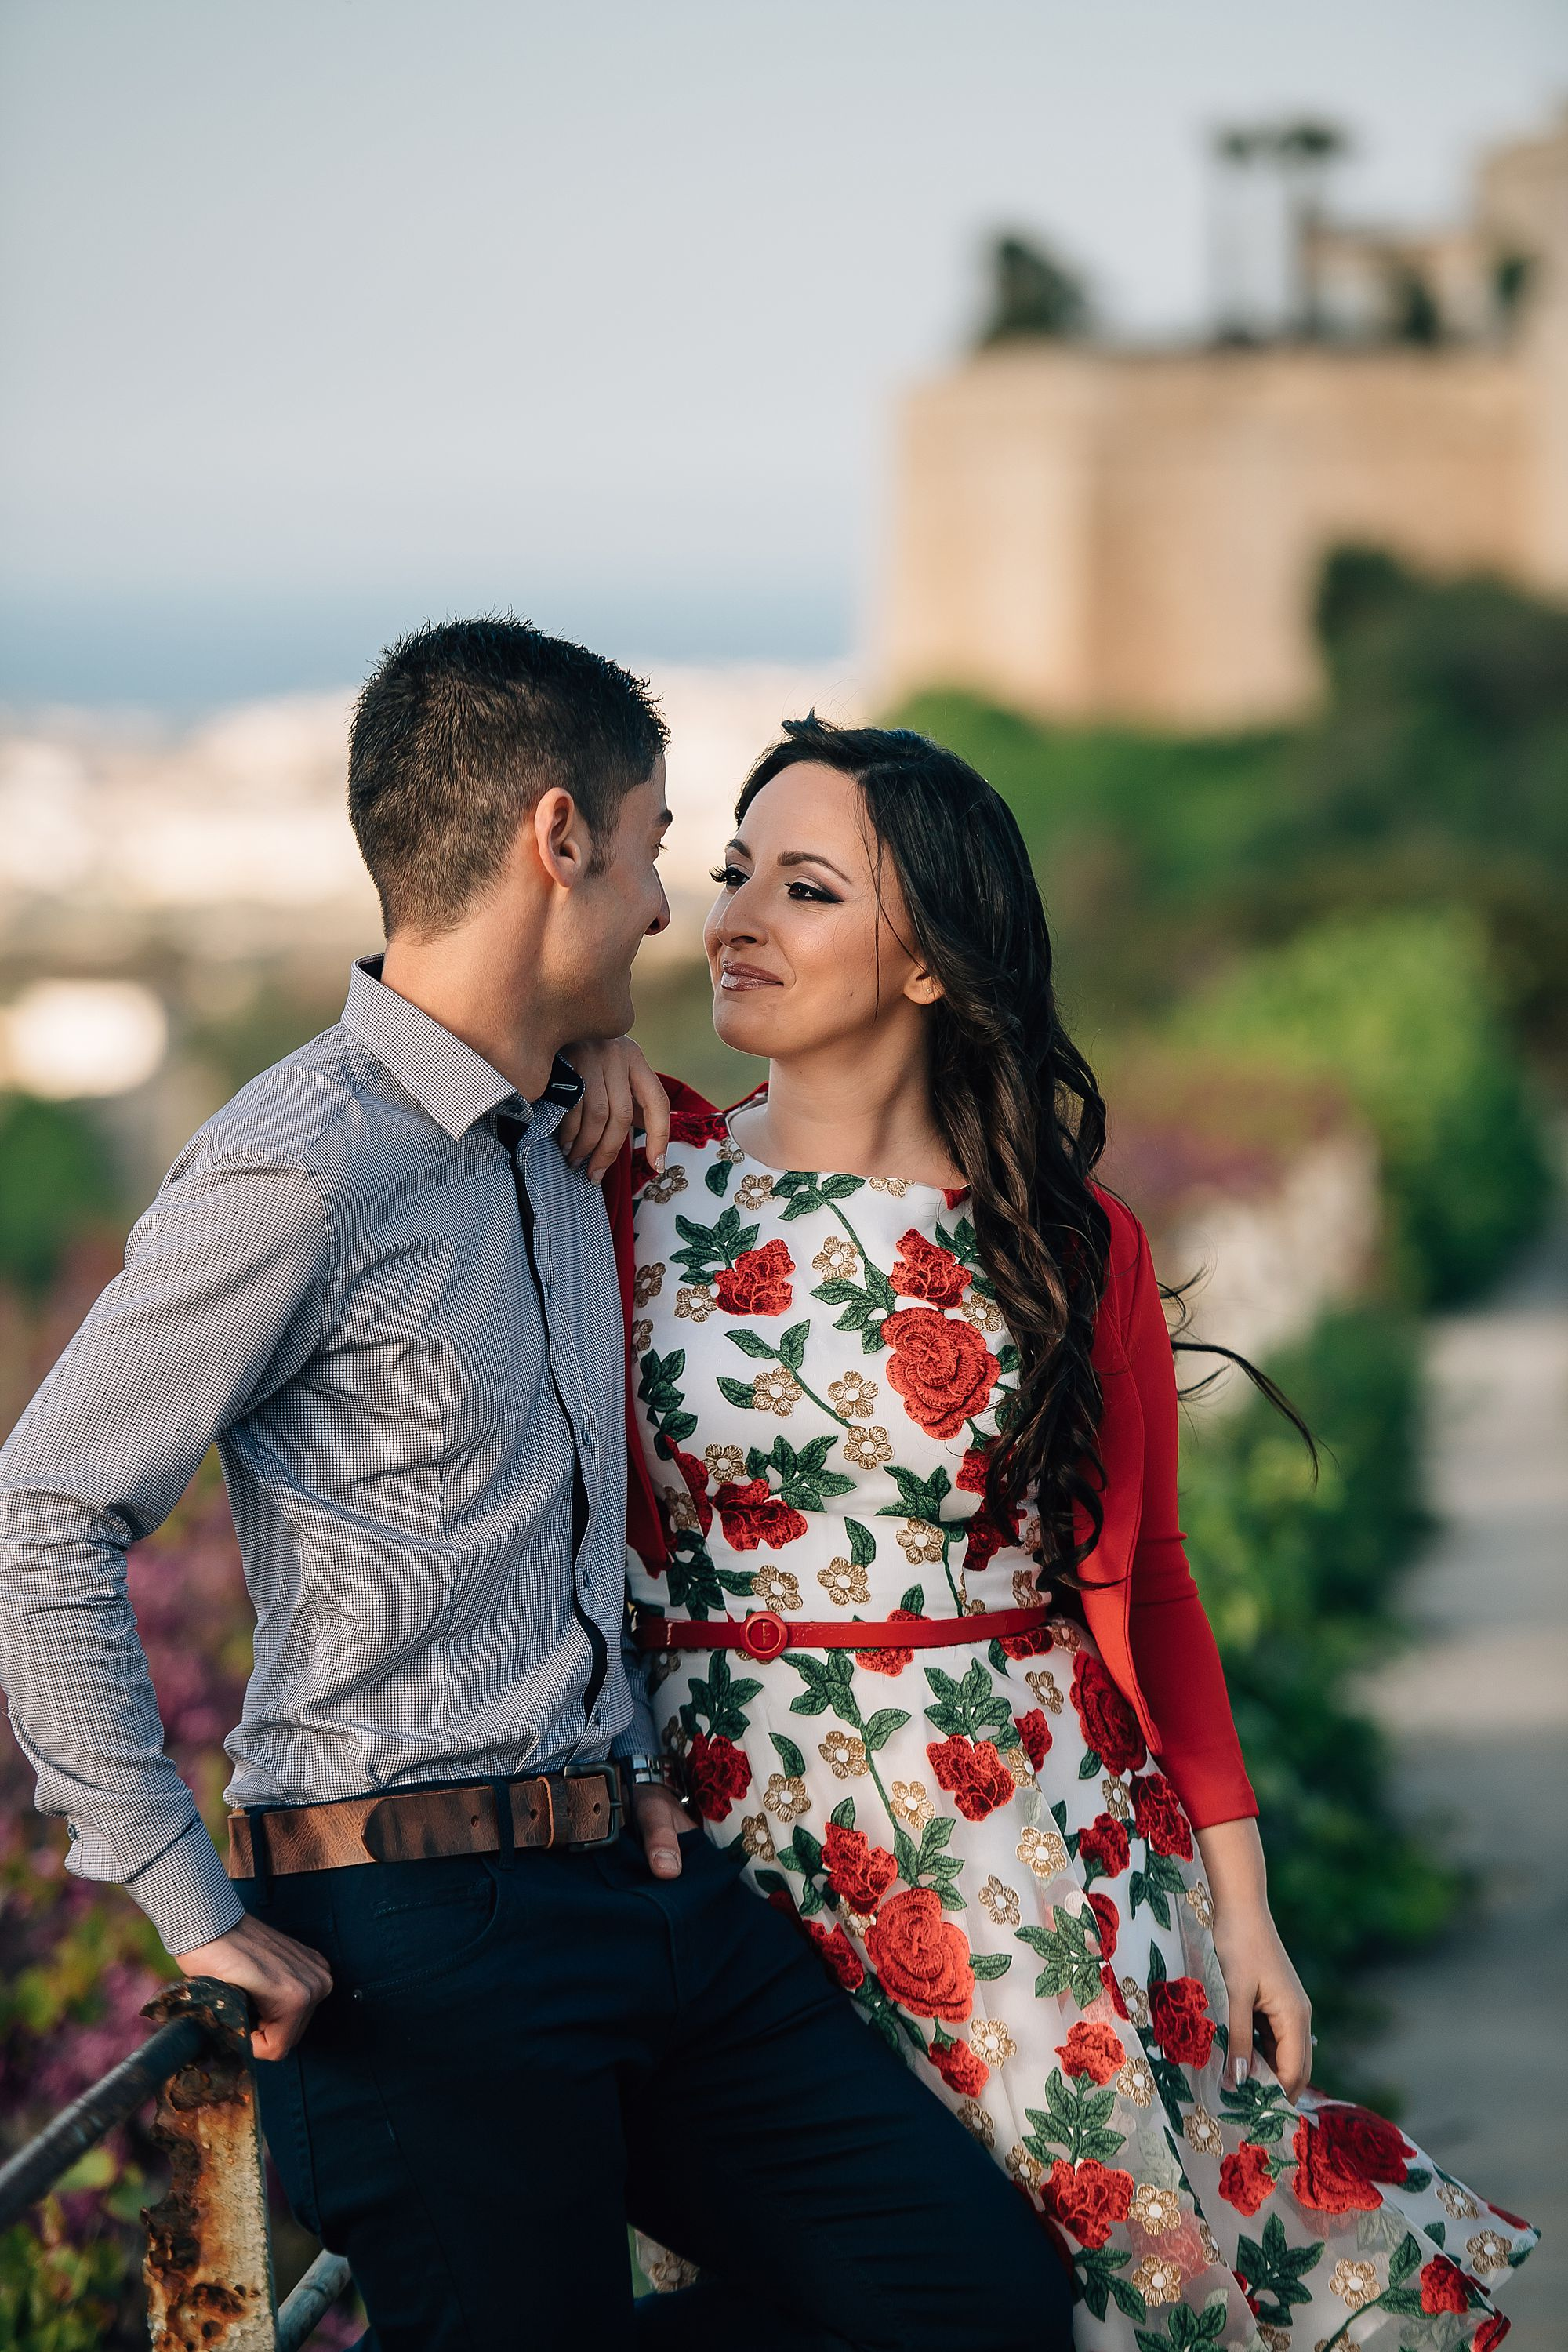 Melinda & Etienne - Pre Wedding Session - Shane P. Watts Photography - Malta